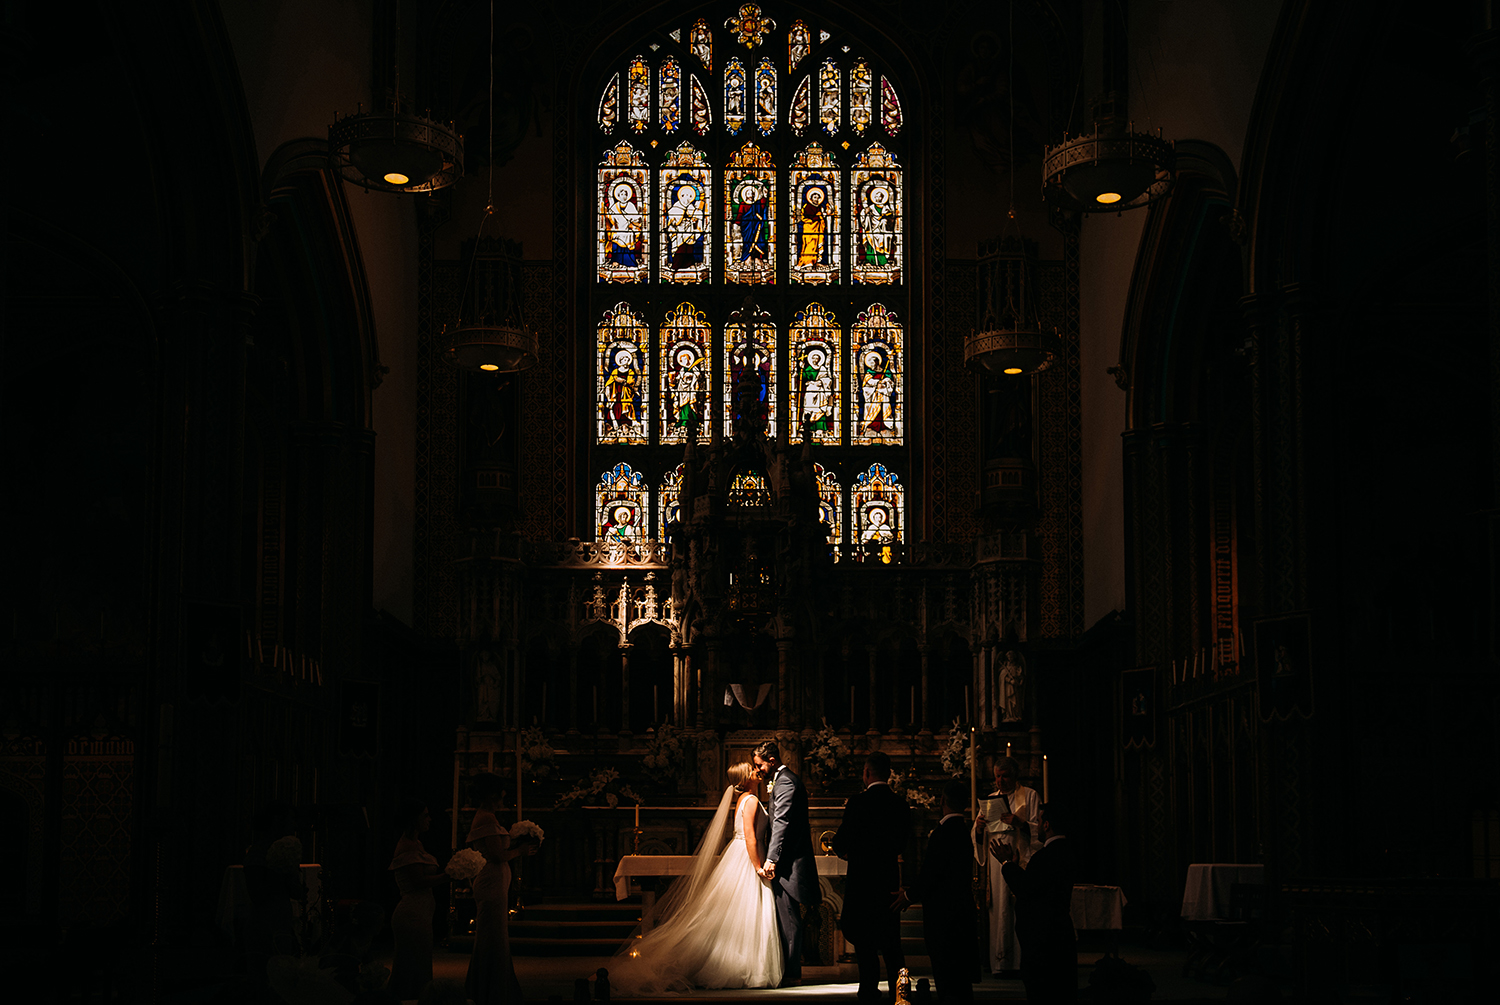 first kiss in church below a huge stained glass window and in amazing light